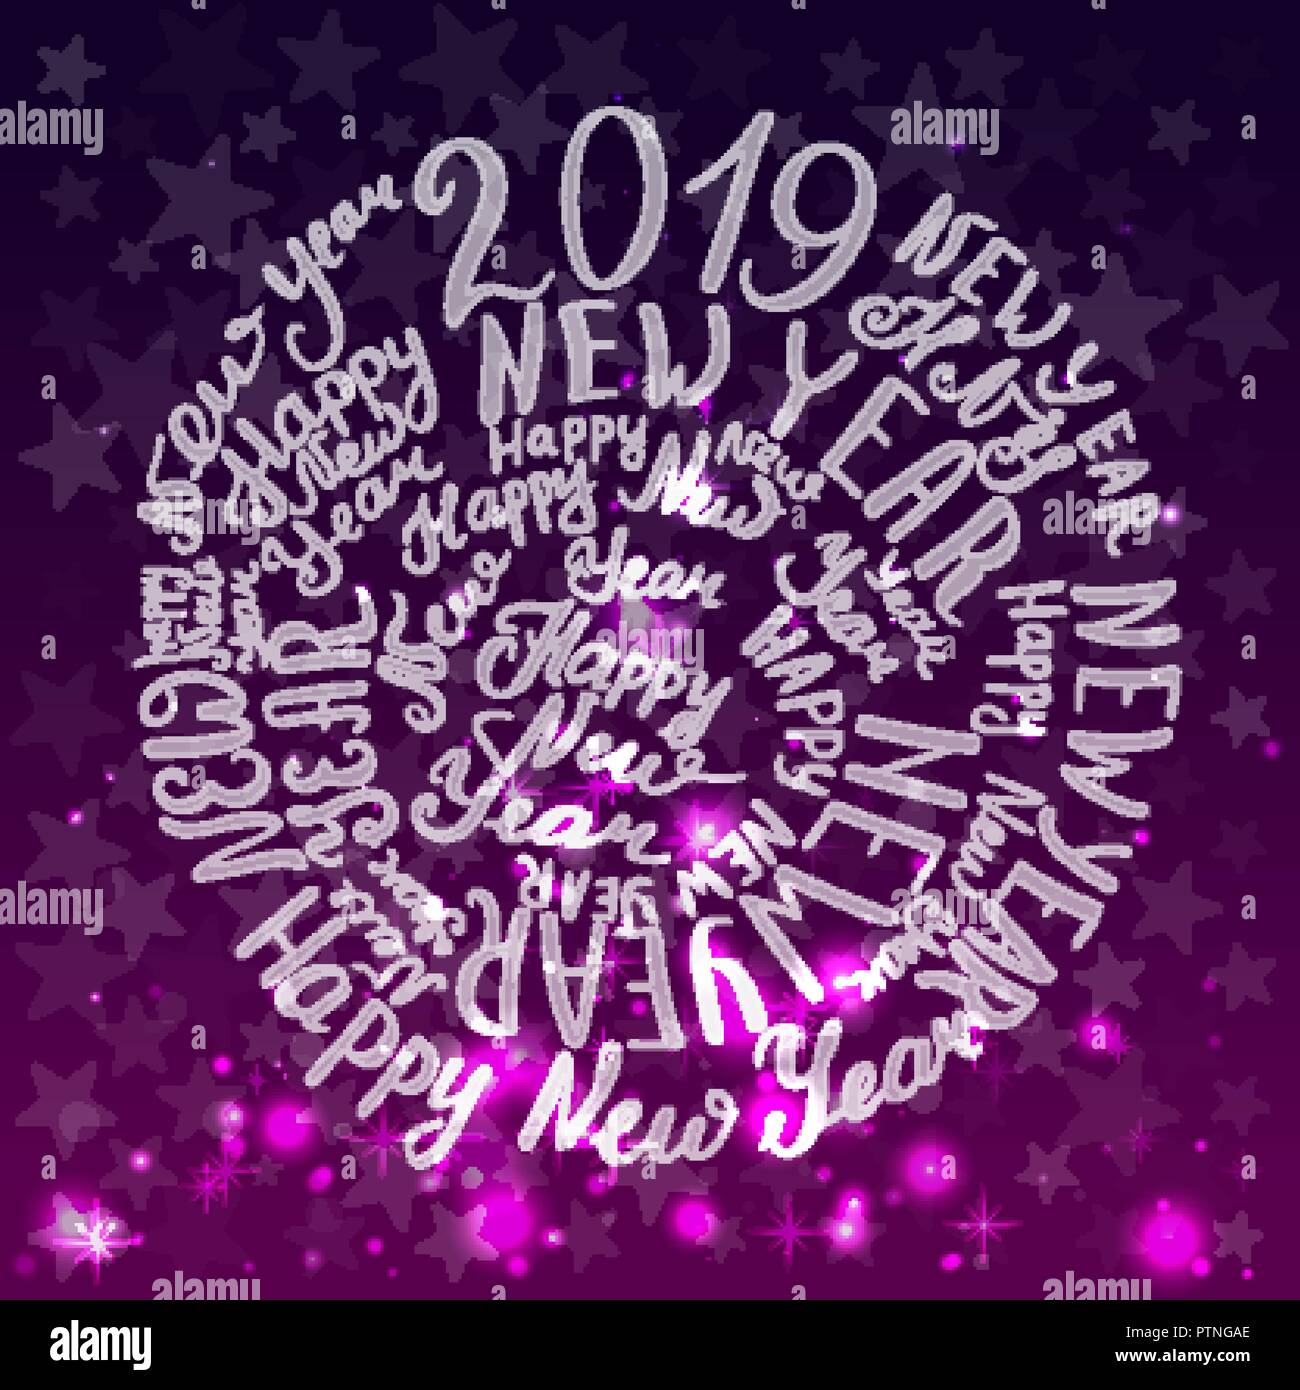 happy new year handwriting calligraphy vector illustration purple background